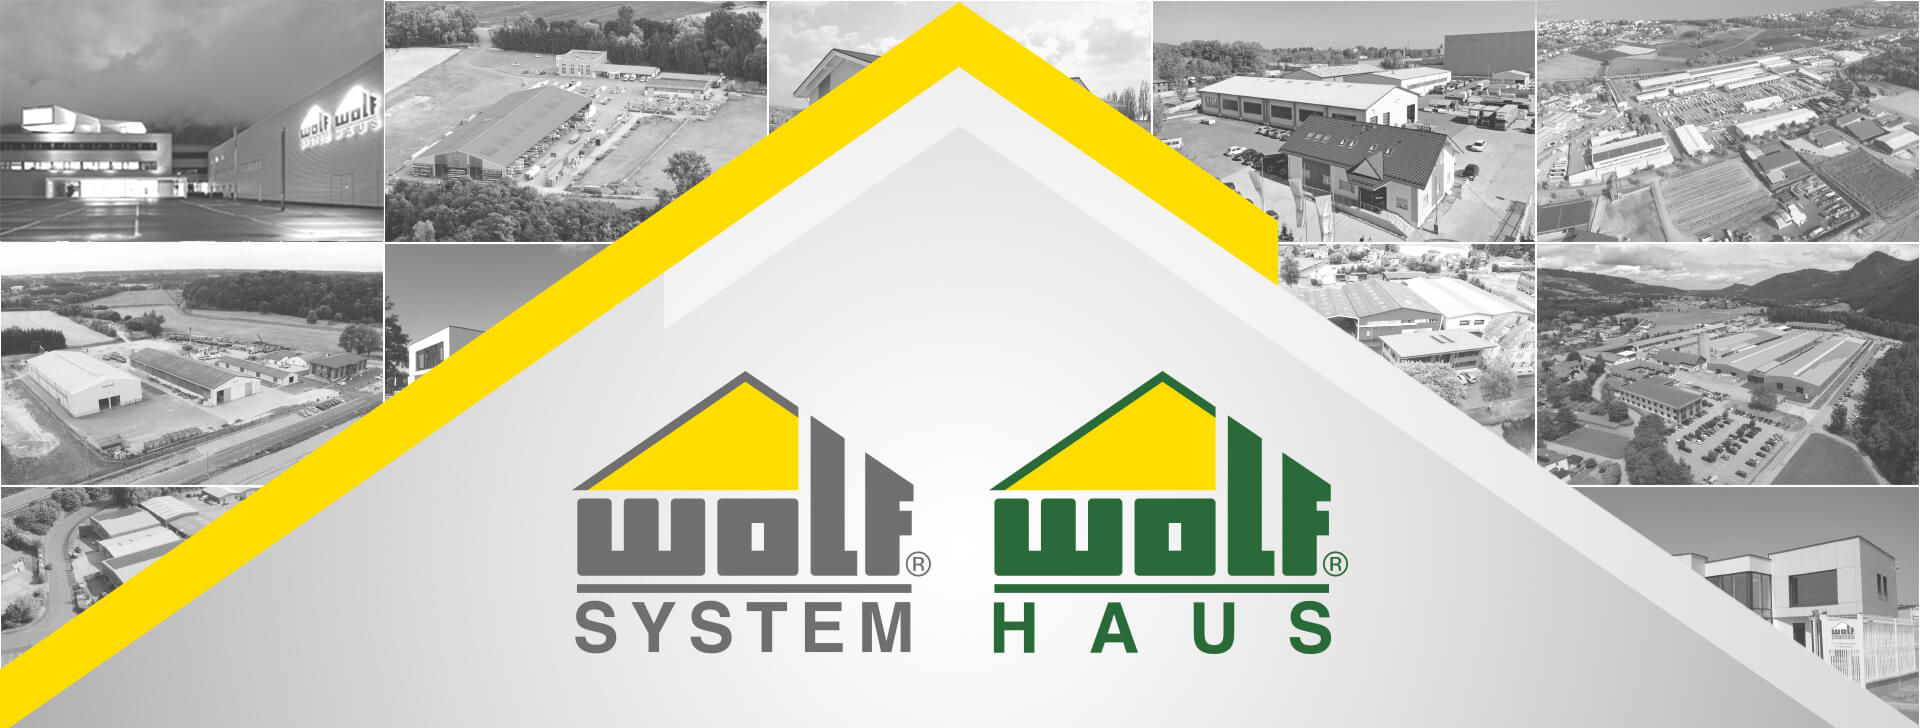 WOLF Group, Shed construction, Prefabricated houses